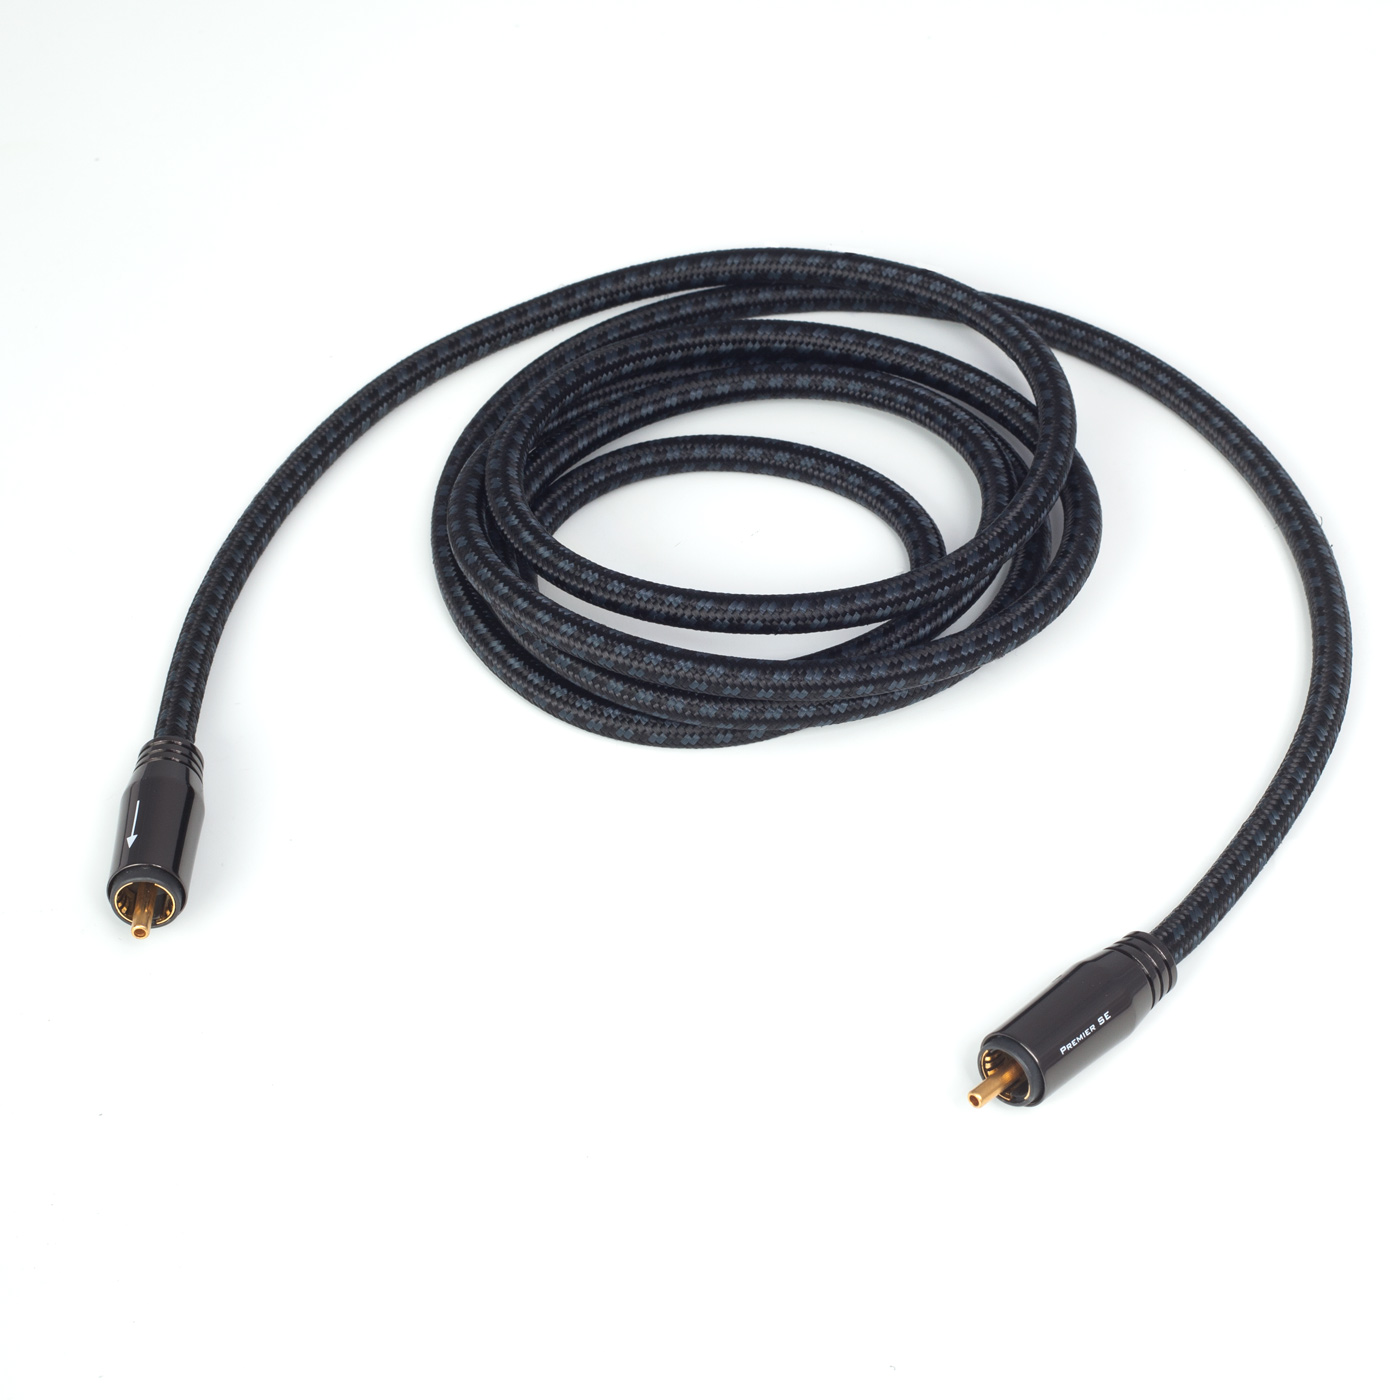 Pangea Premier Se Interconnect Cable Rca To Audio Advisor Copper Electrical Wire Ductor Pvc Insulated You May Also Like